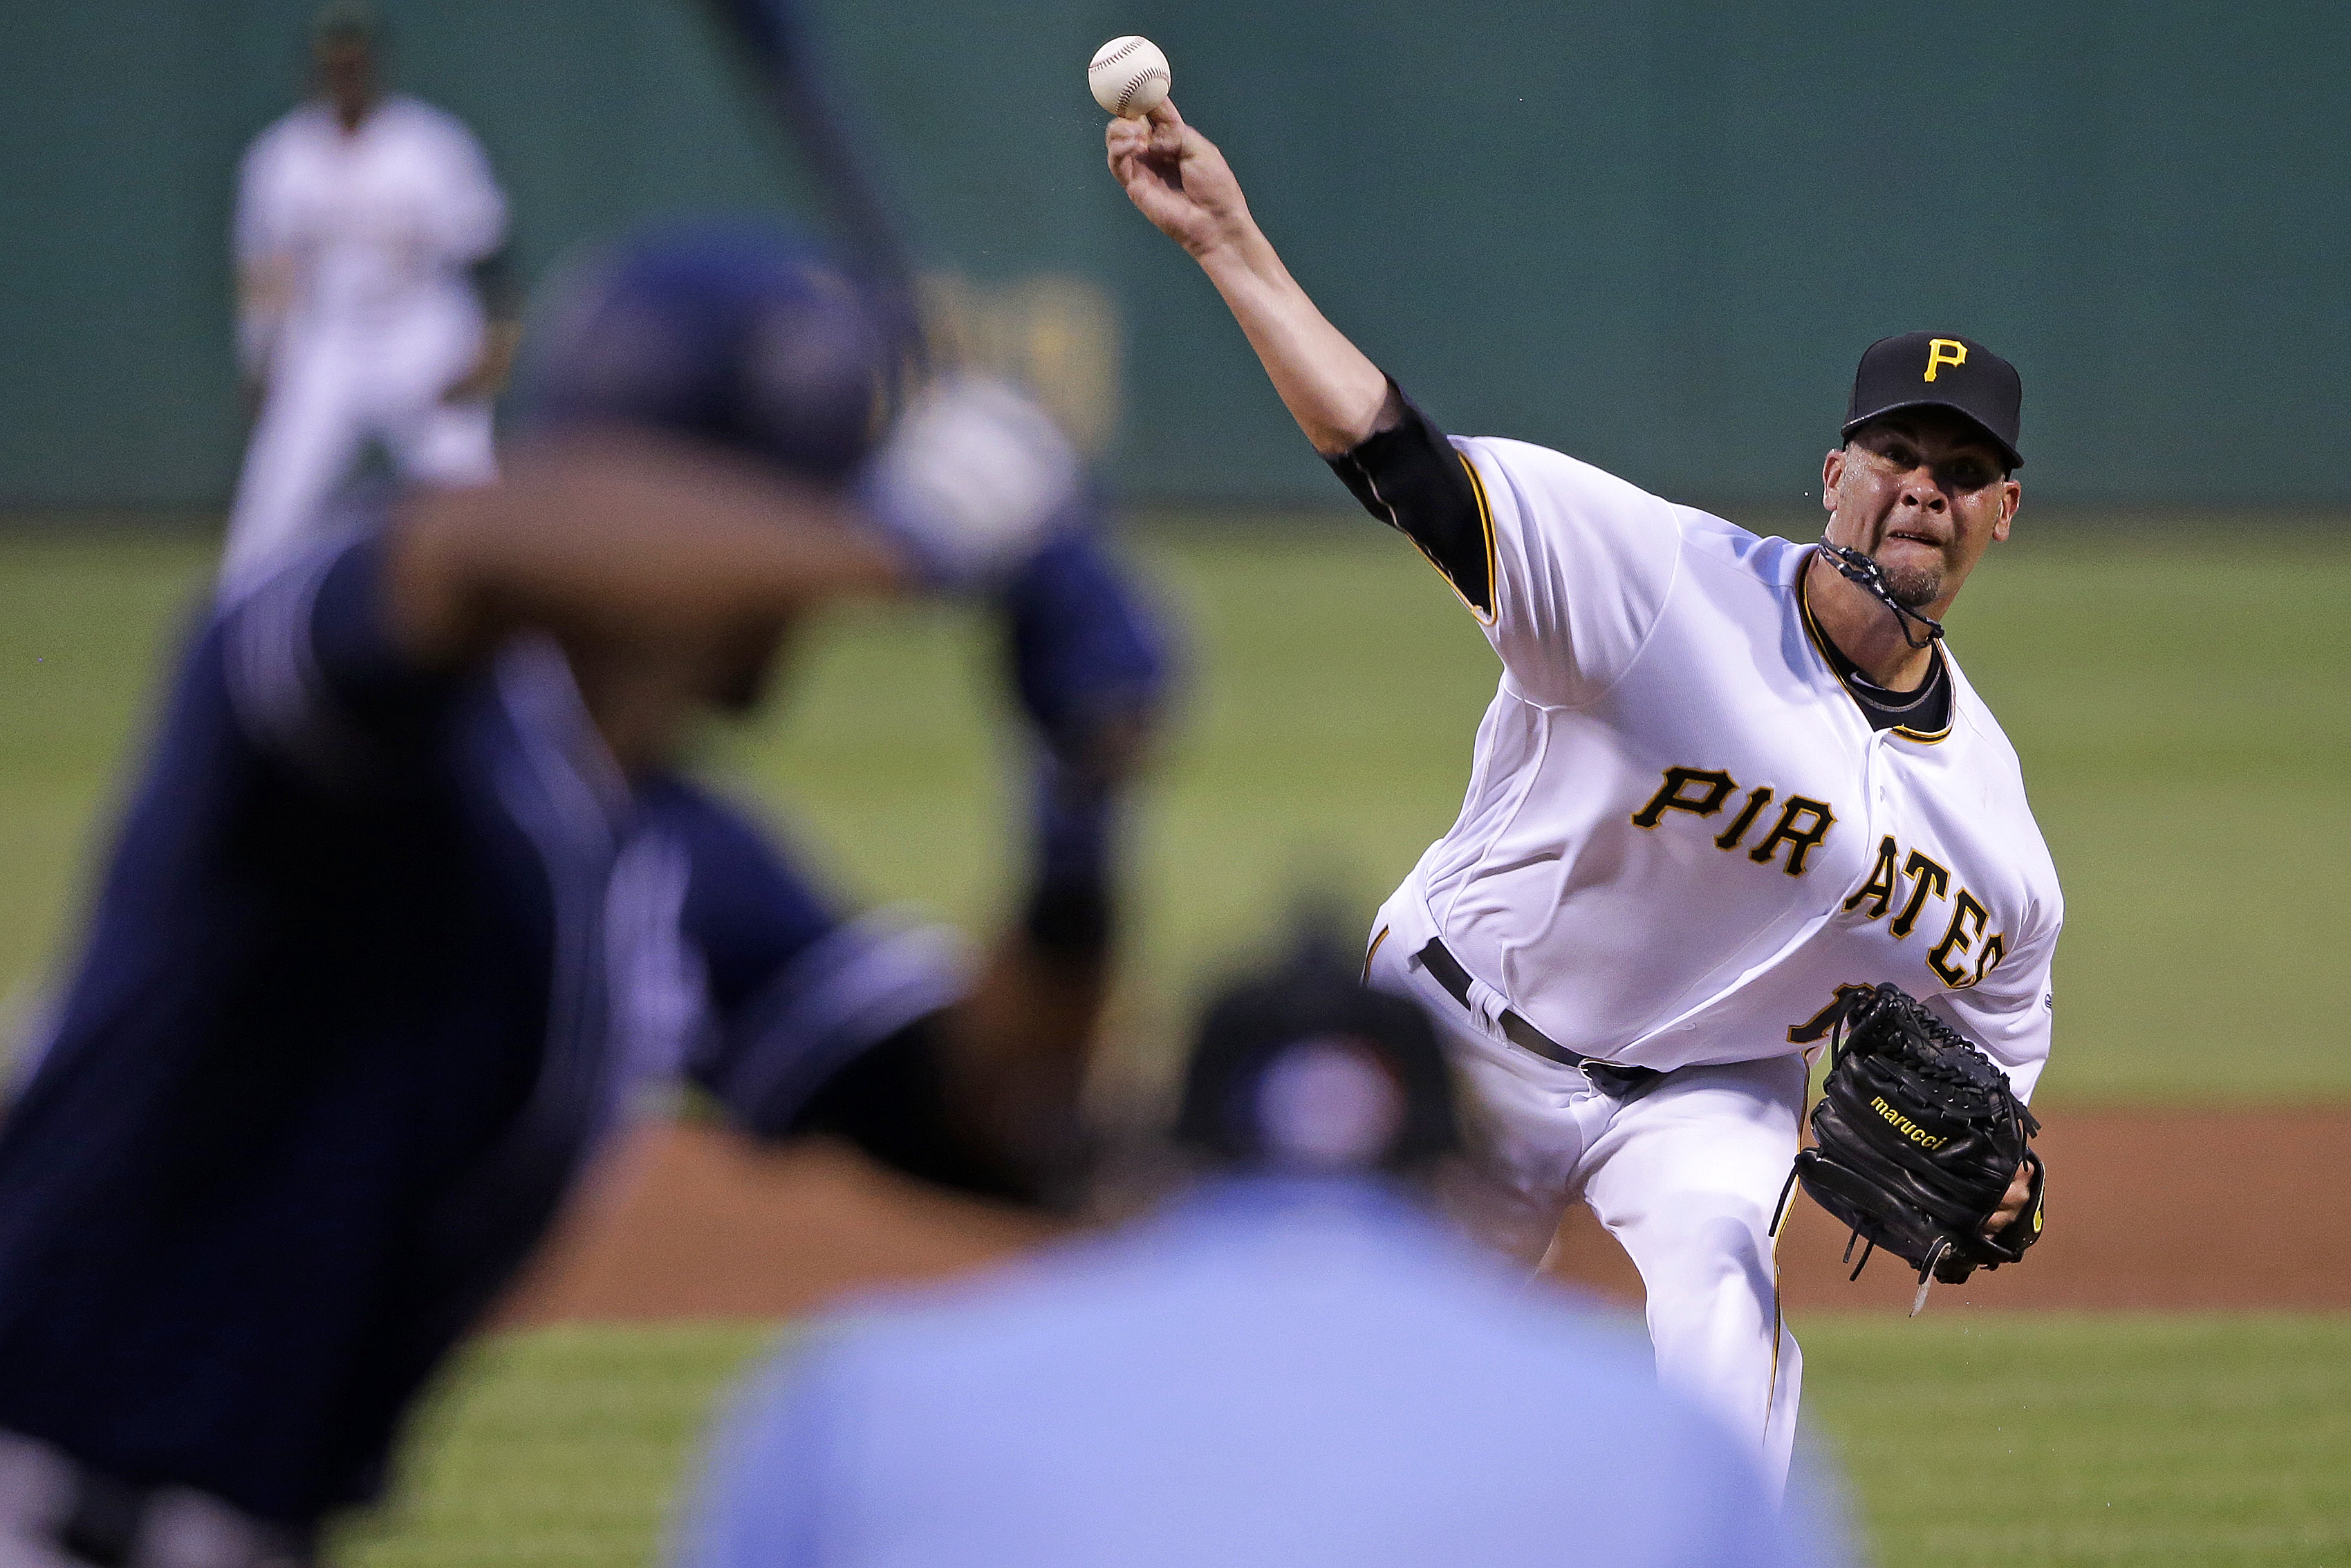 Pittsburgh Pirates starting pitcher Ryan Vogelsong delivers a pitch in the fourth inning of a baseball game against the San Diego Padres in Pittsburgh, Wednesday, Aug. 10, 2016. (AP Photo/Gene J. Puskar)